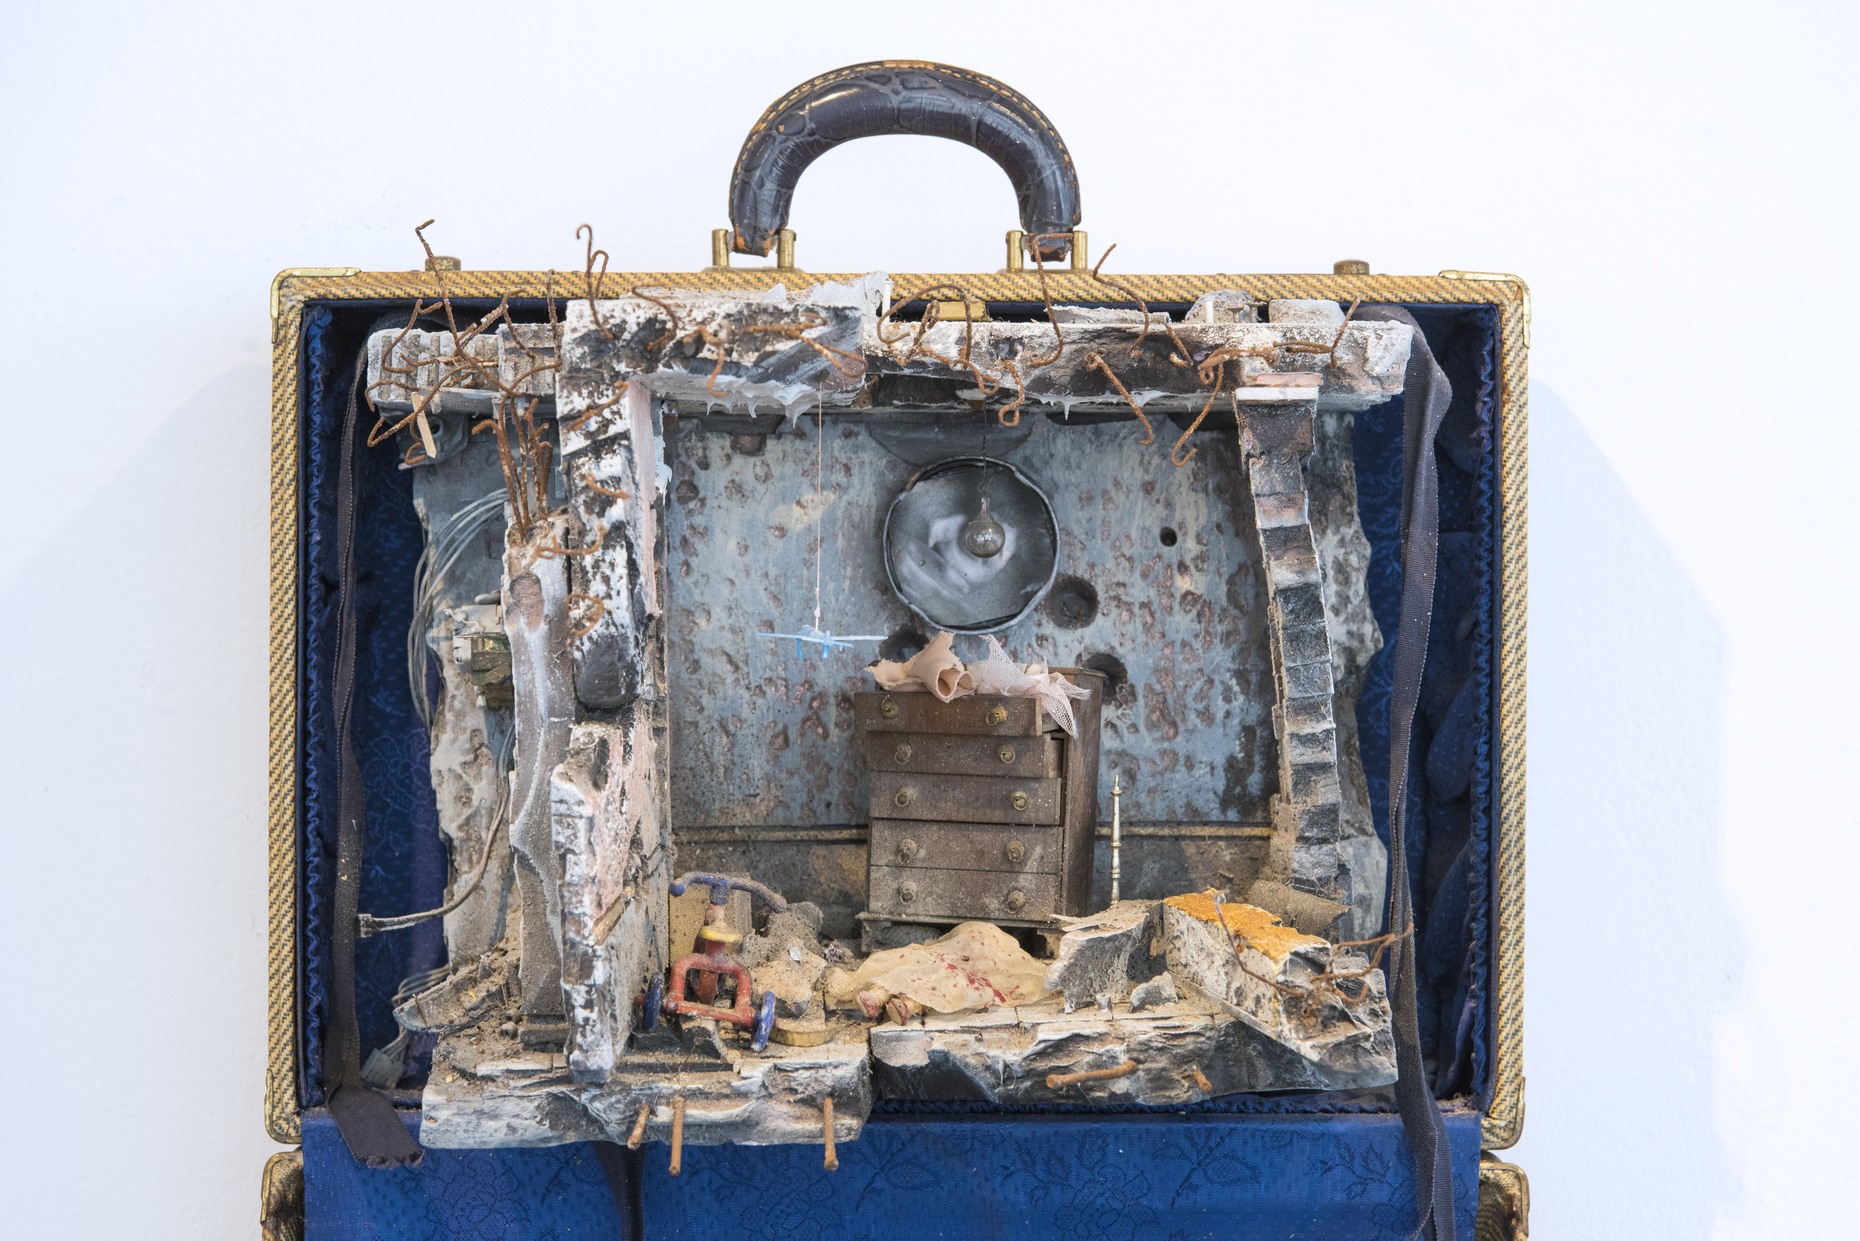 A home made in a suitcase